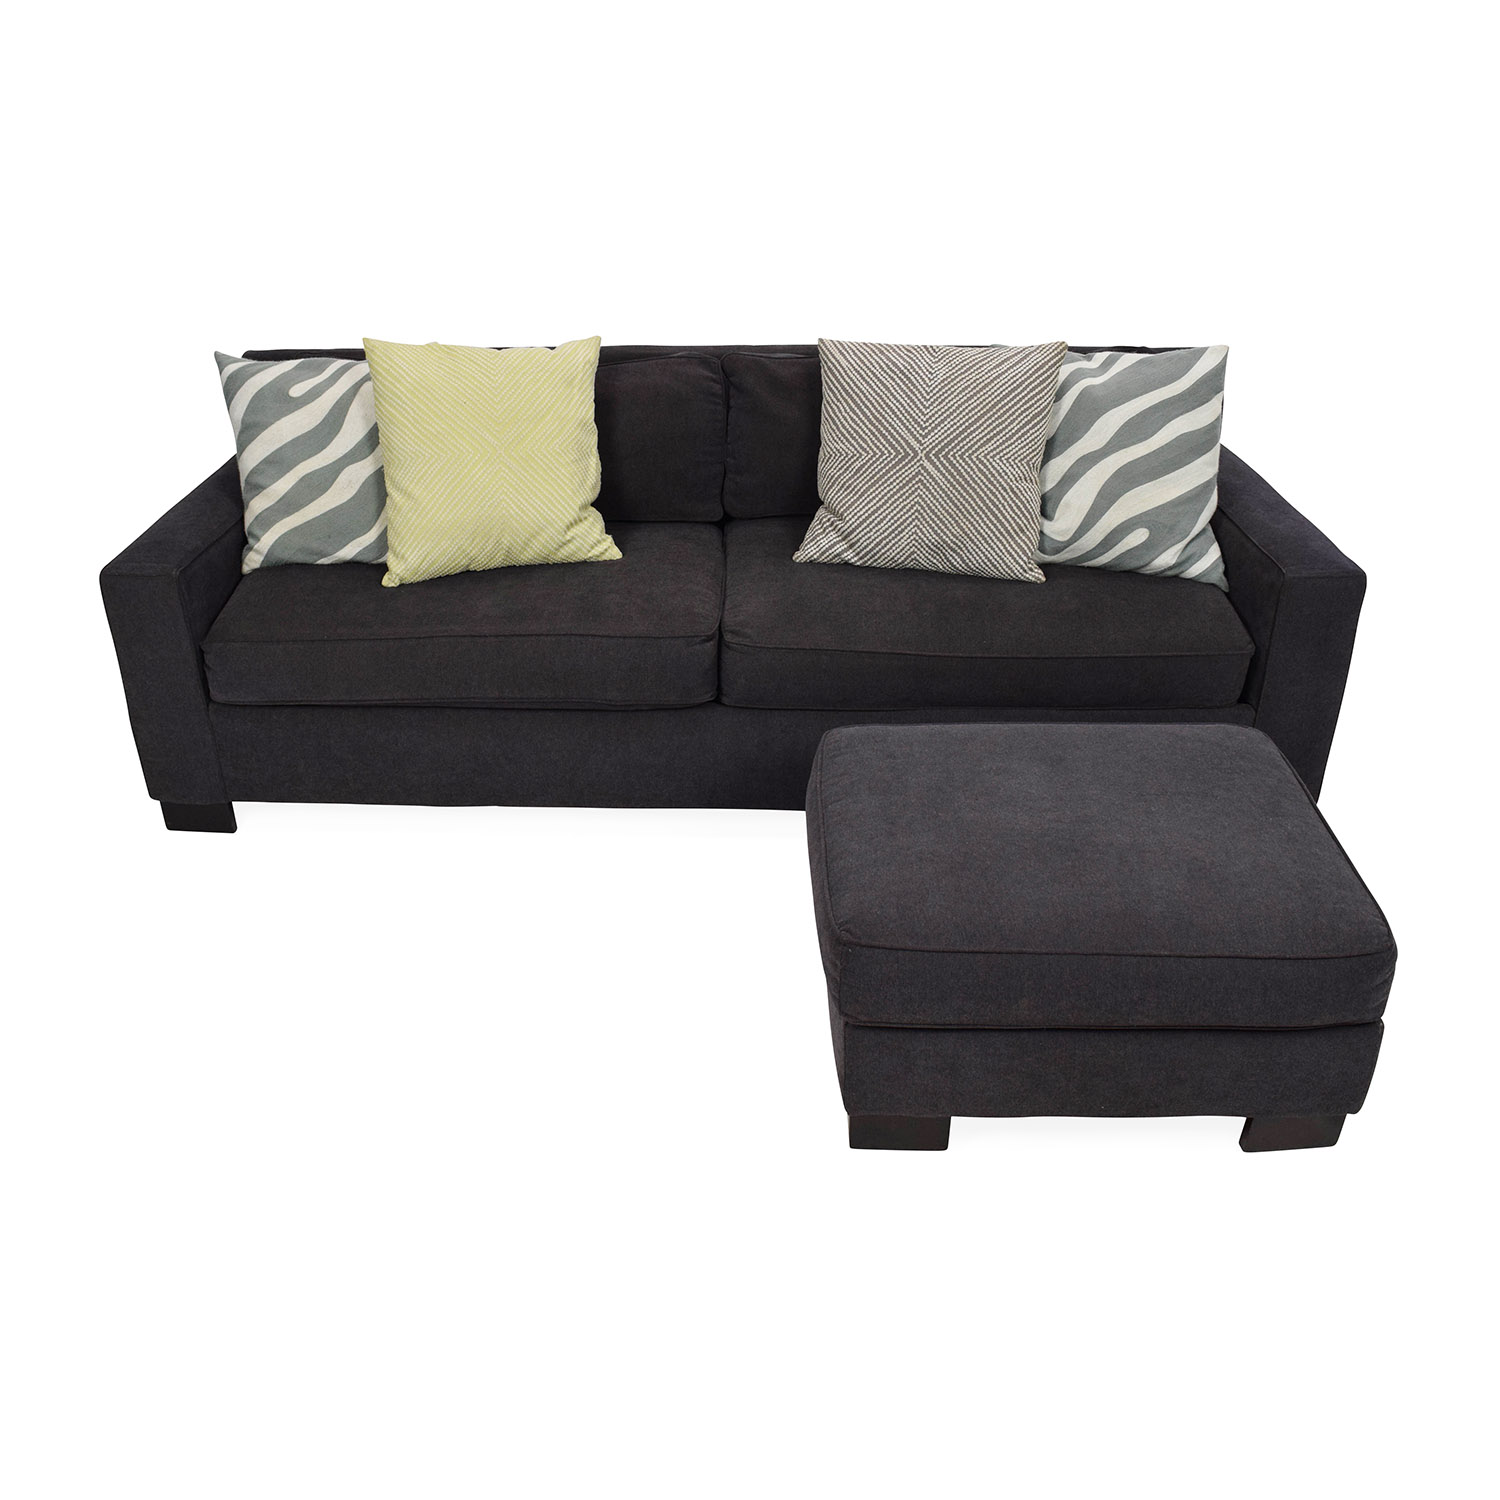 West Elm Sofa with Ottoman / Classic Sofas